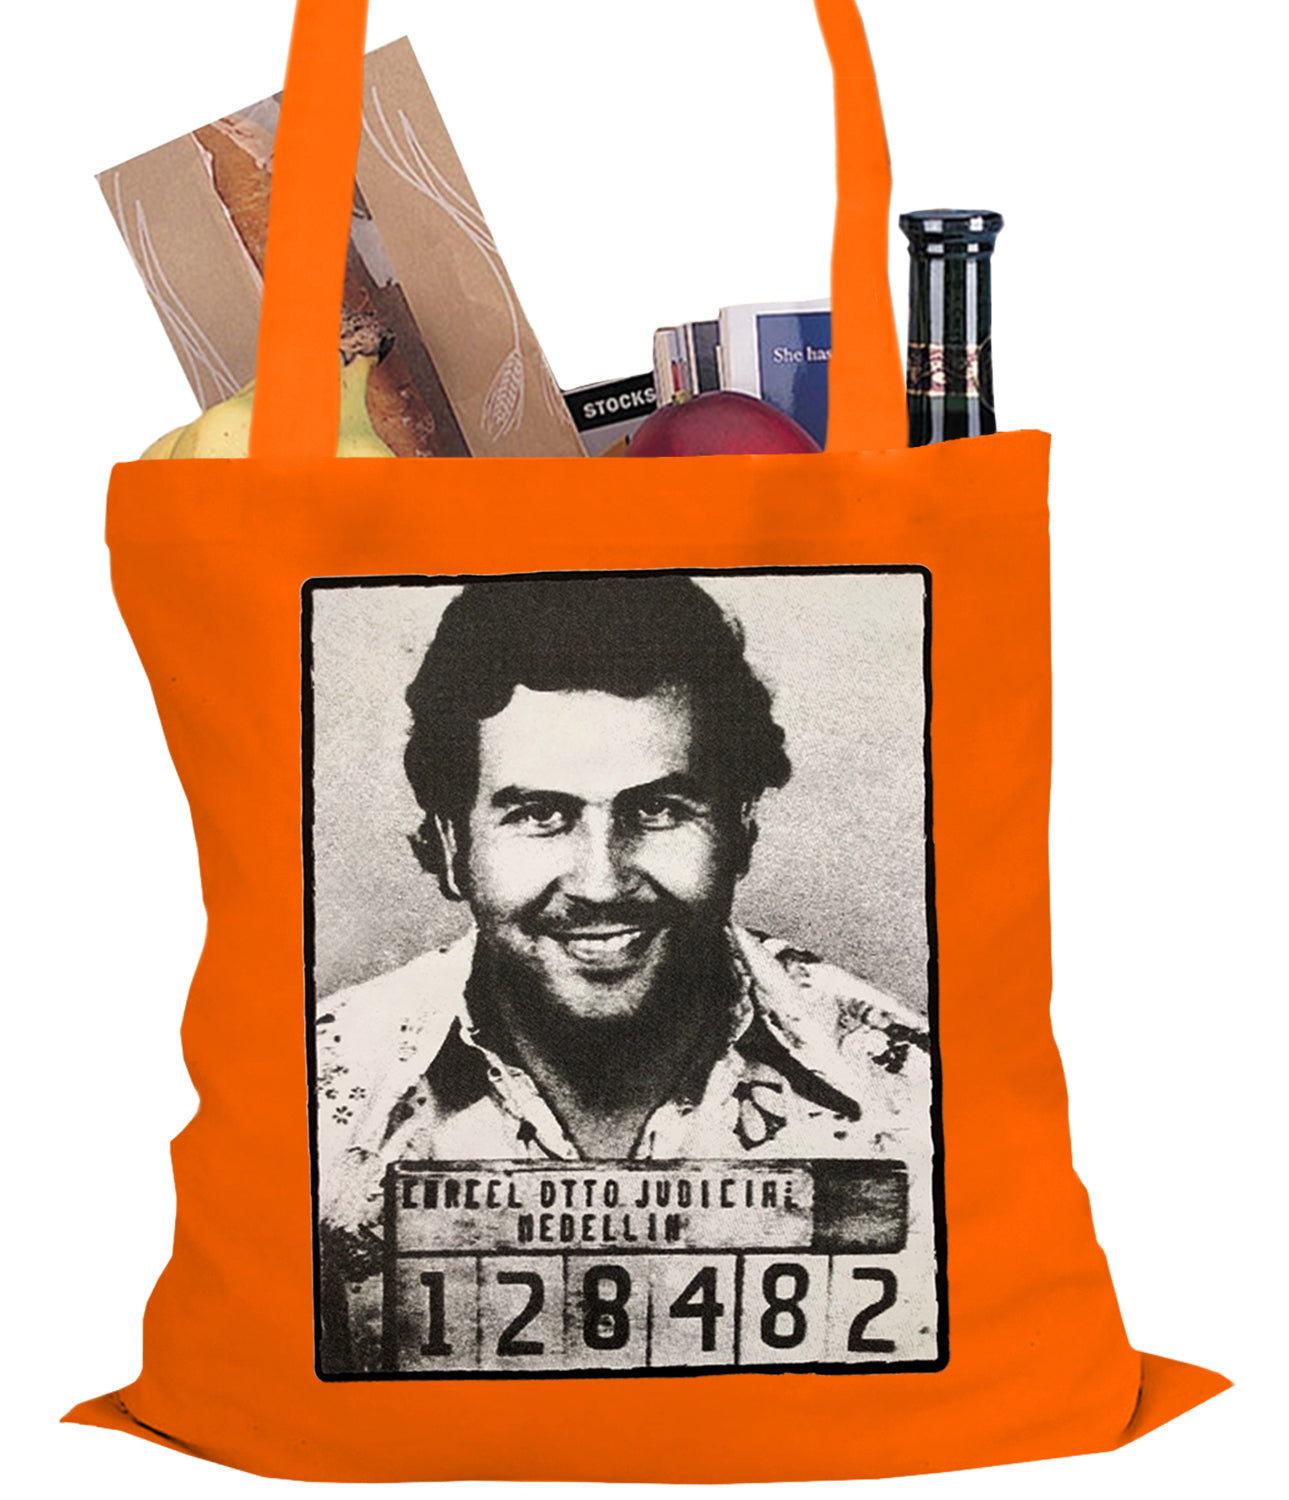 Pablo Escobar Smiling Mug Shot Tote Bag